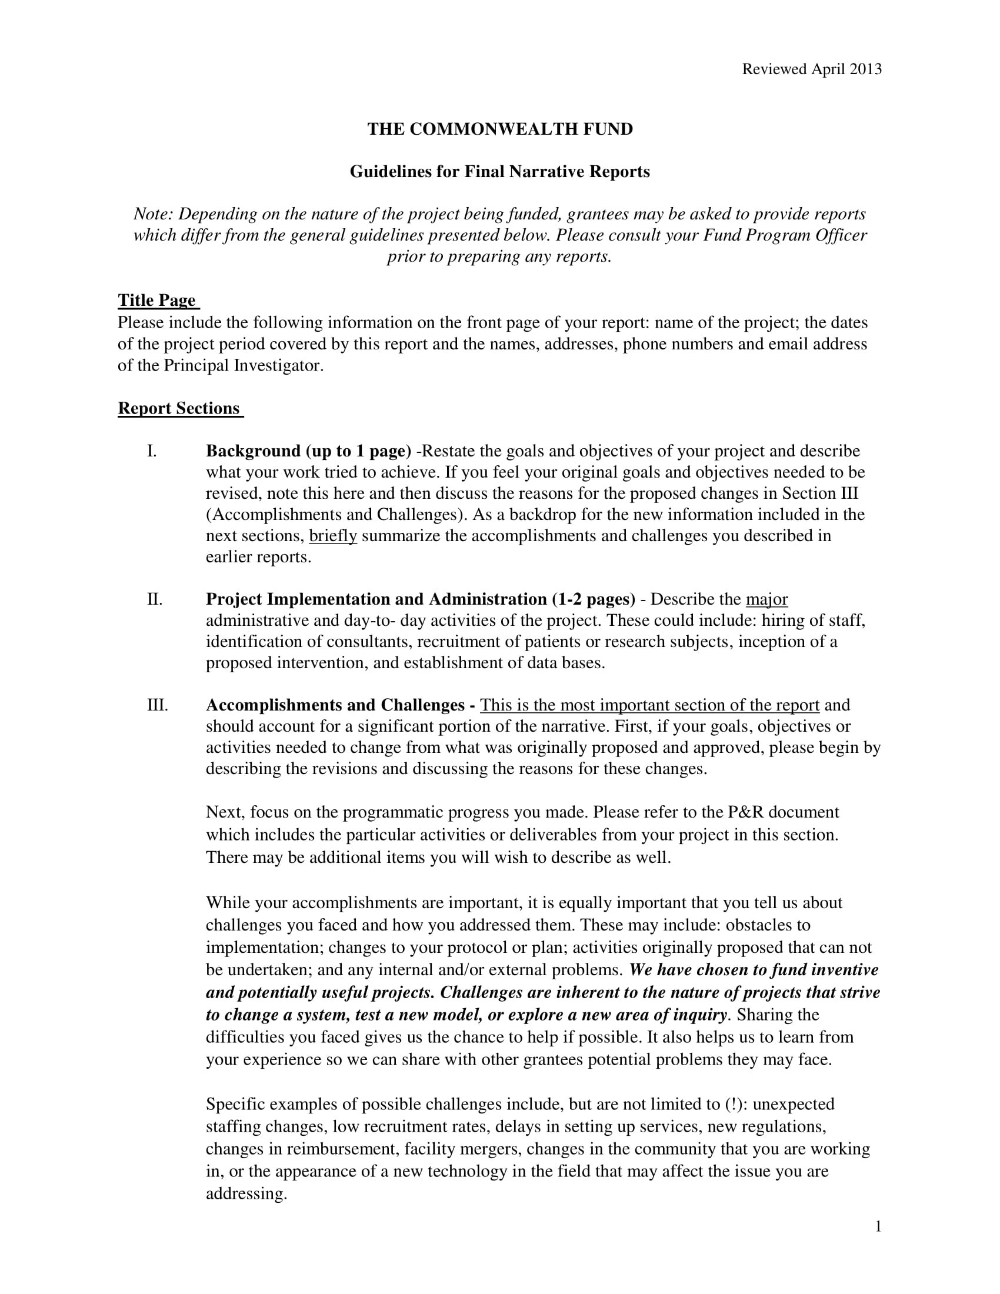 Narrative Report Examples Pdf Examples Regarding How To Write A Work Report Template 10 Professional Te Report Template Report Writing Format Report Writing